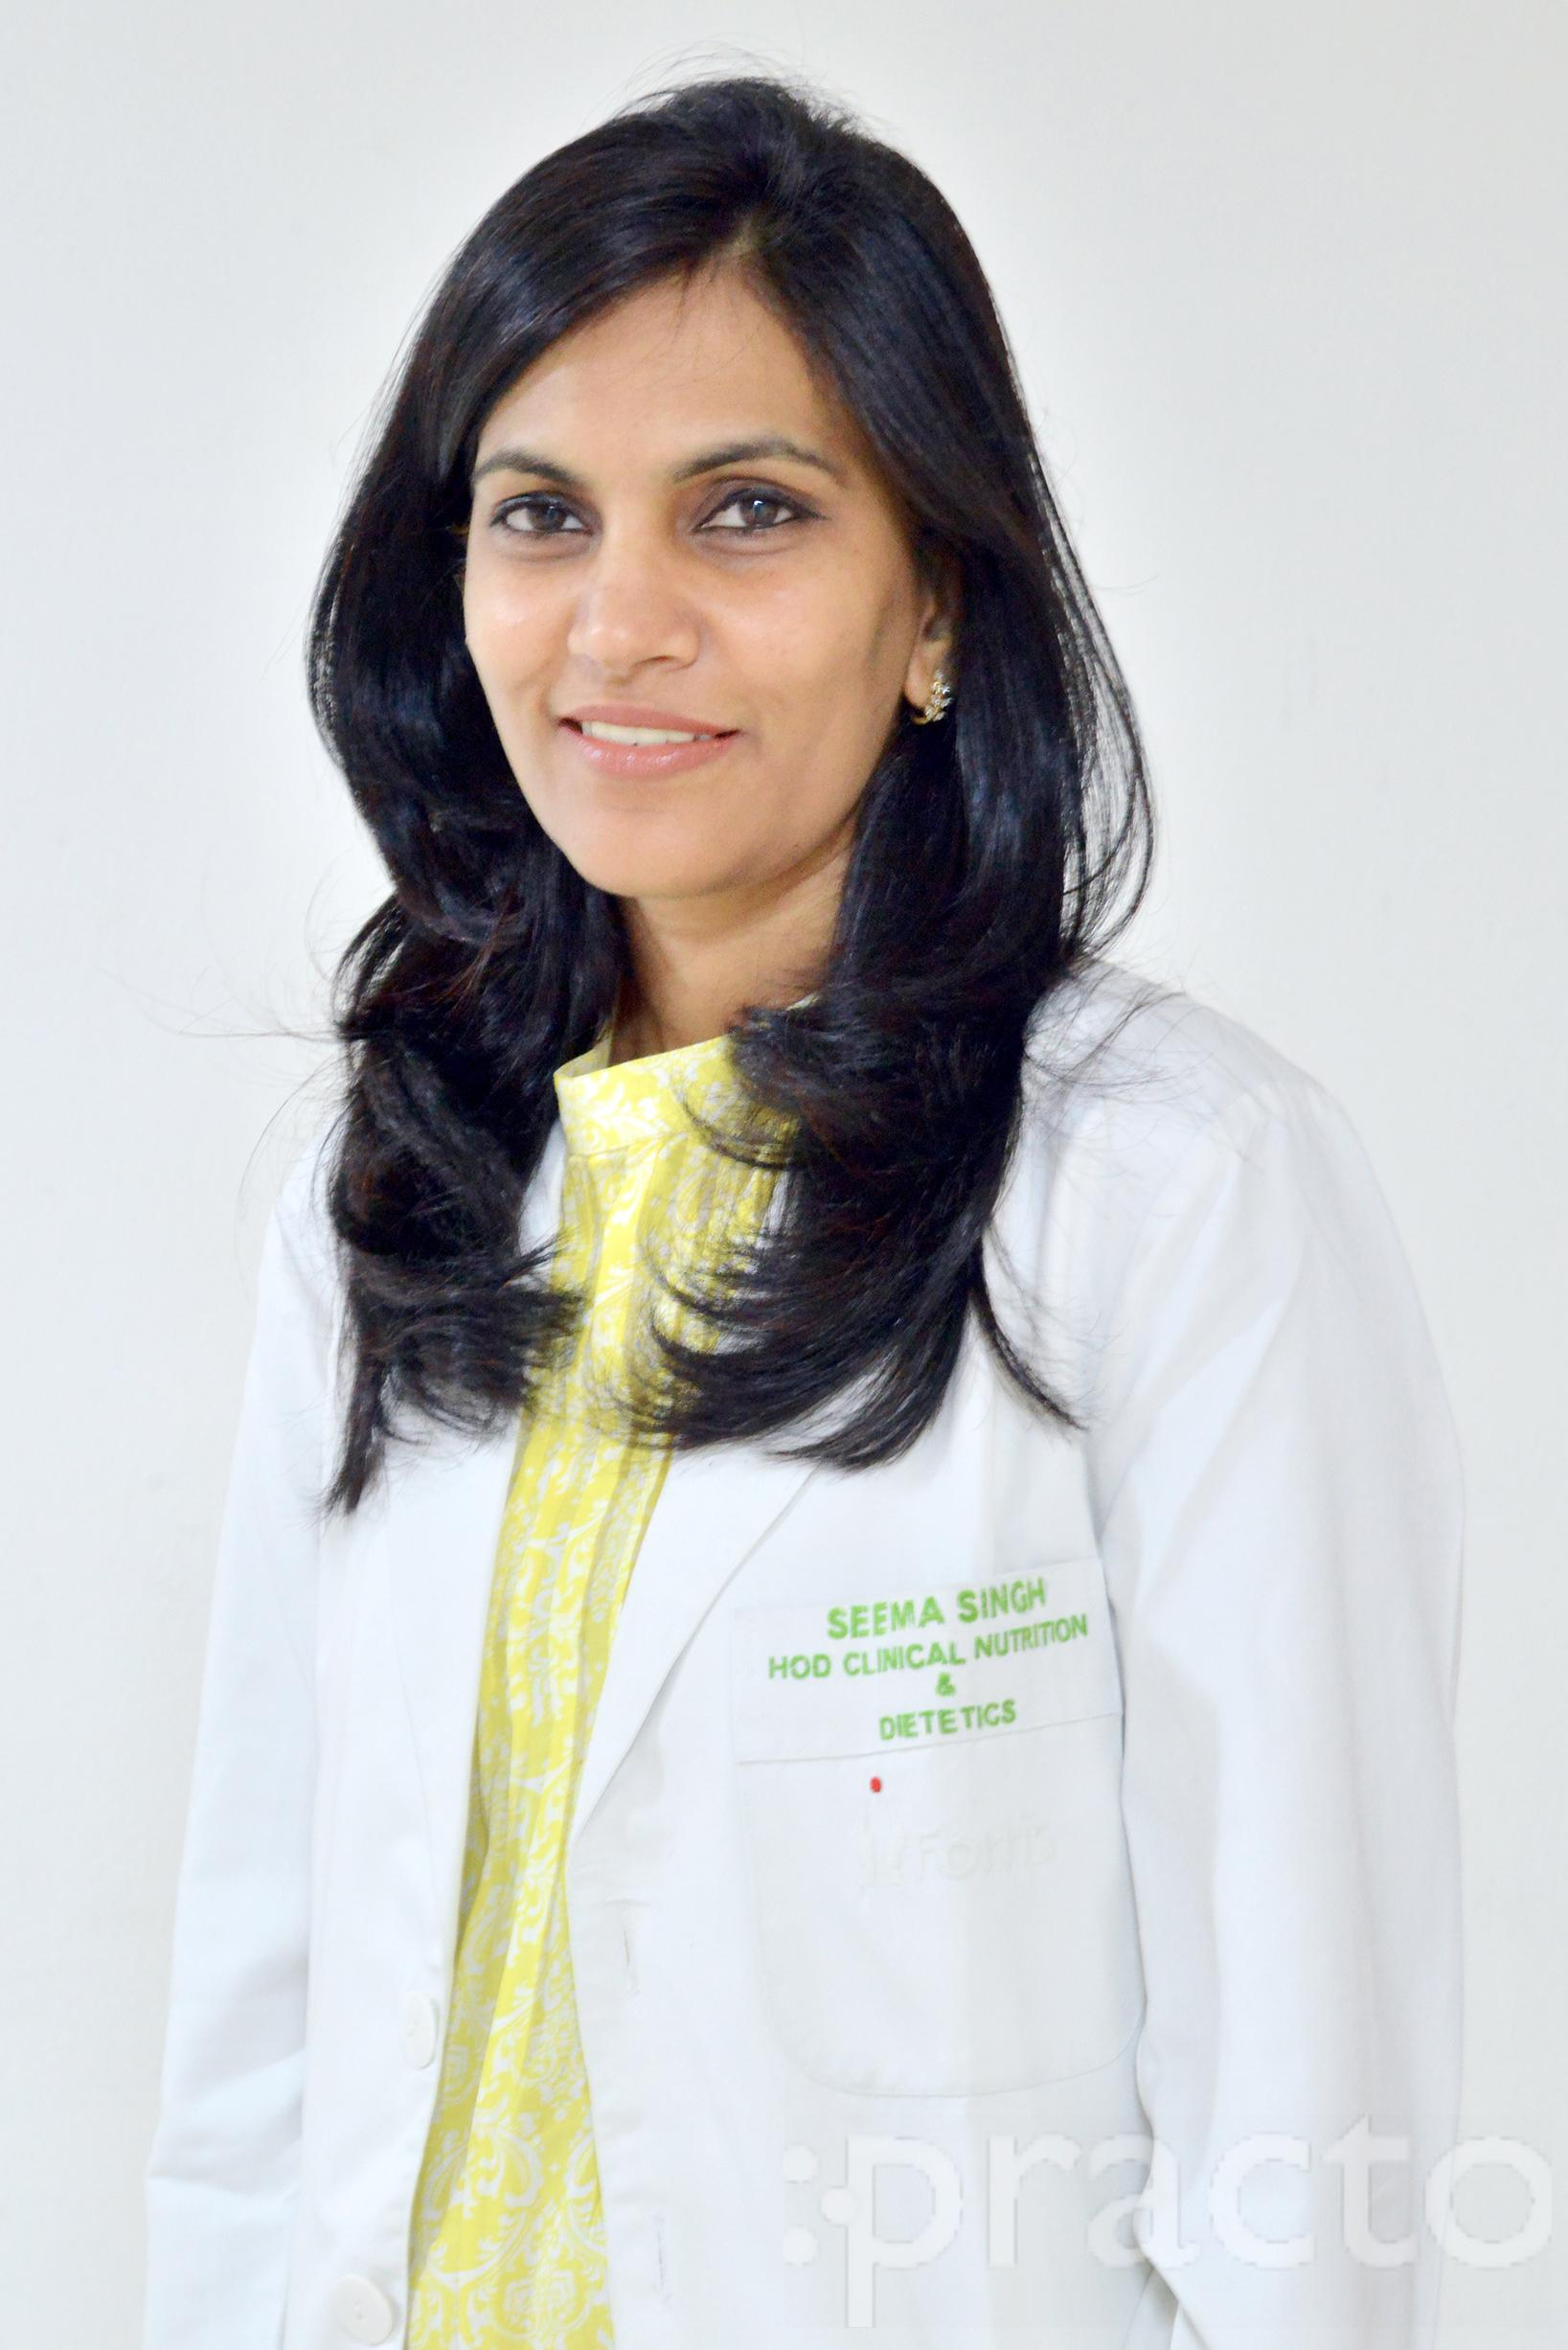 Ms. Seema Singh - Dietitian/Nutritionist